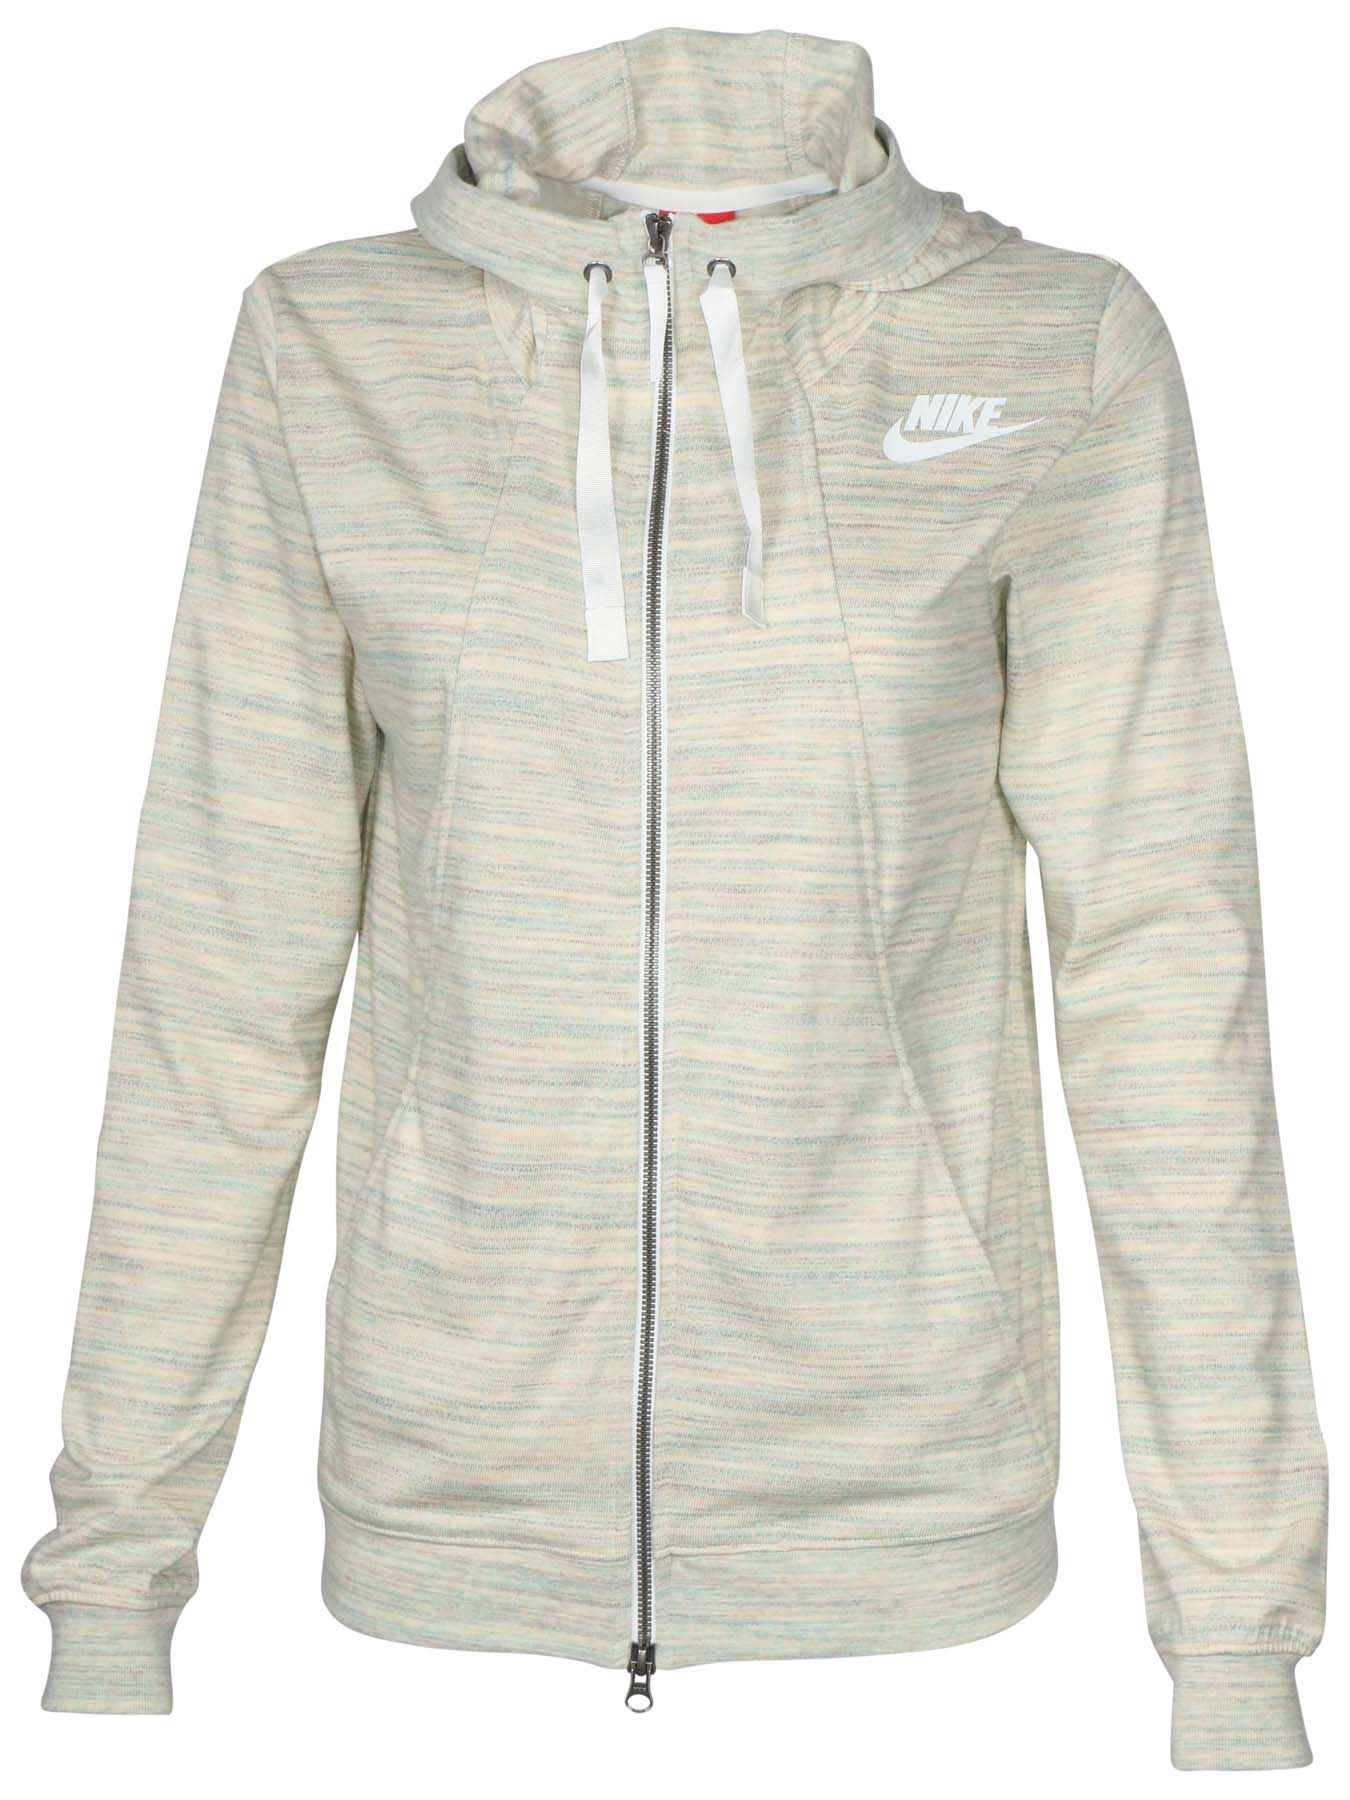 2ba5dd917735 Details about Nike Women s Gym Classic Full Zip Sport Casual Hoodie-Sail  Heather